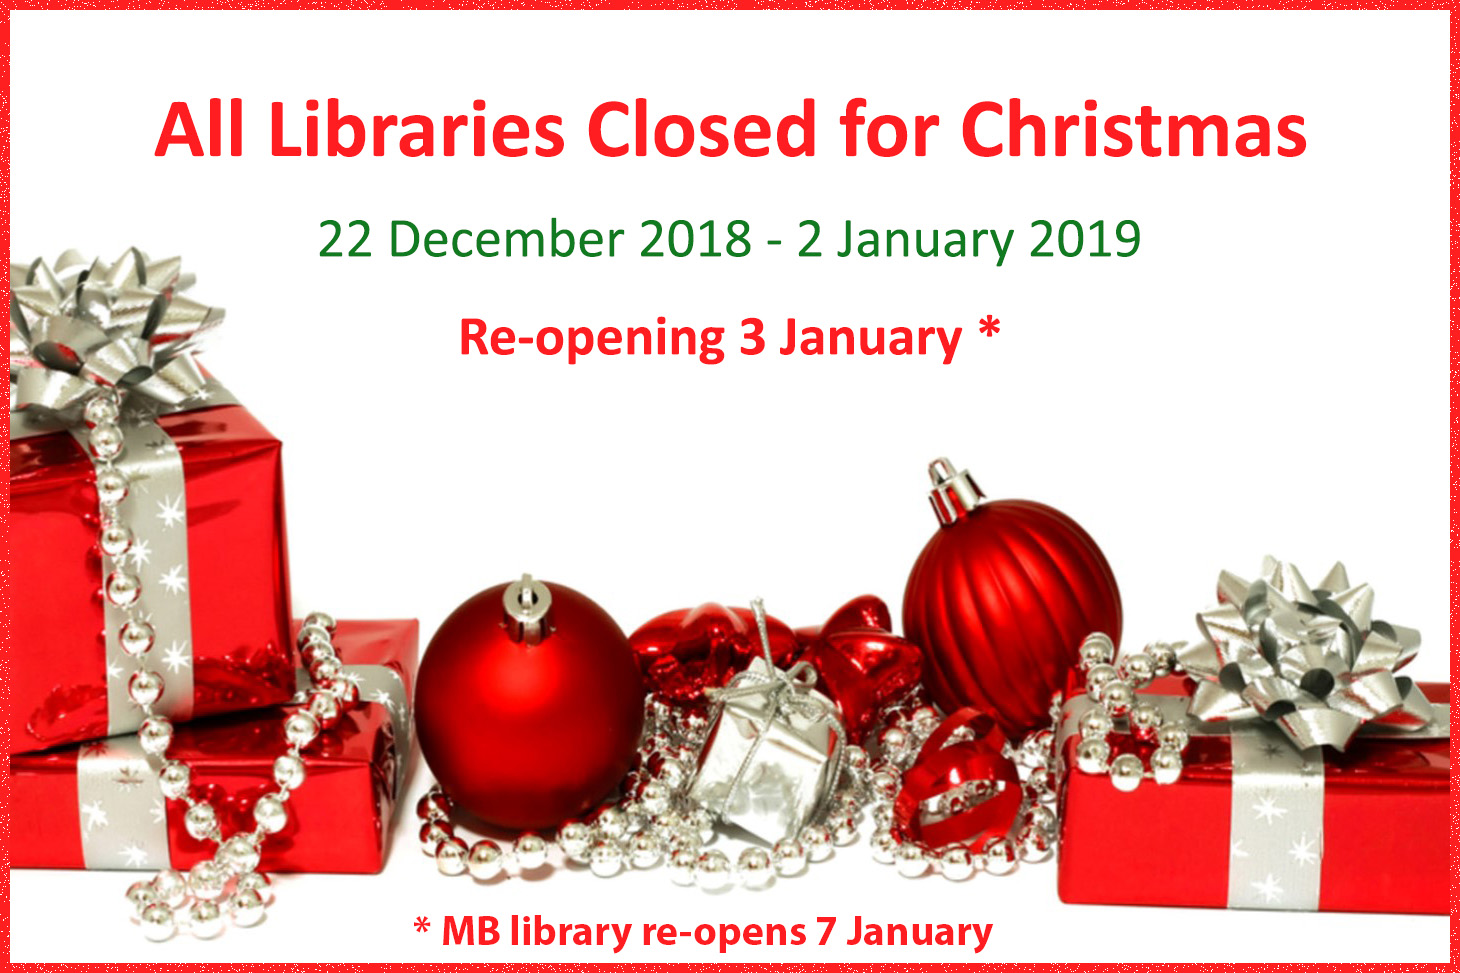 2018 All libraries closed for Christmas